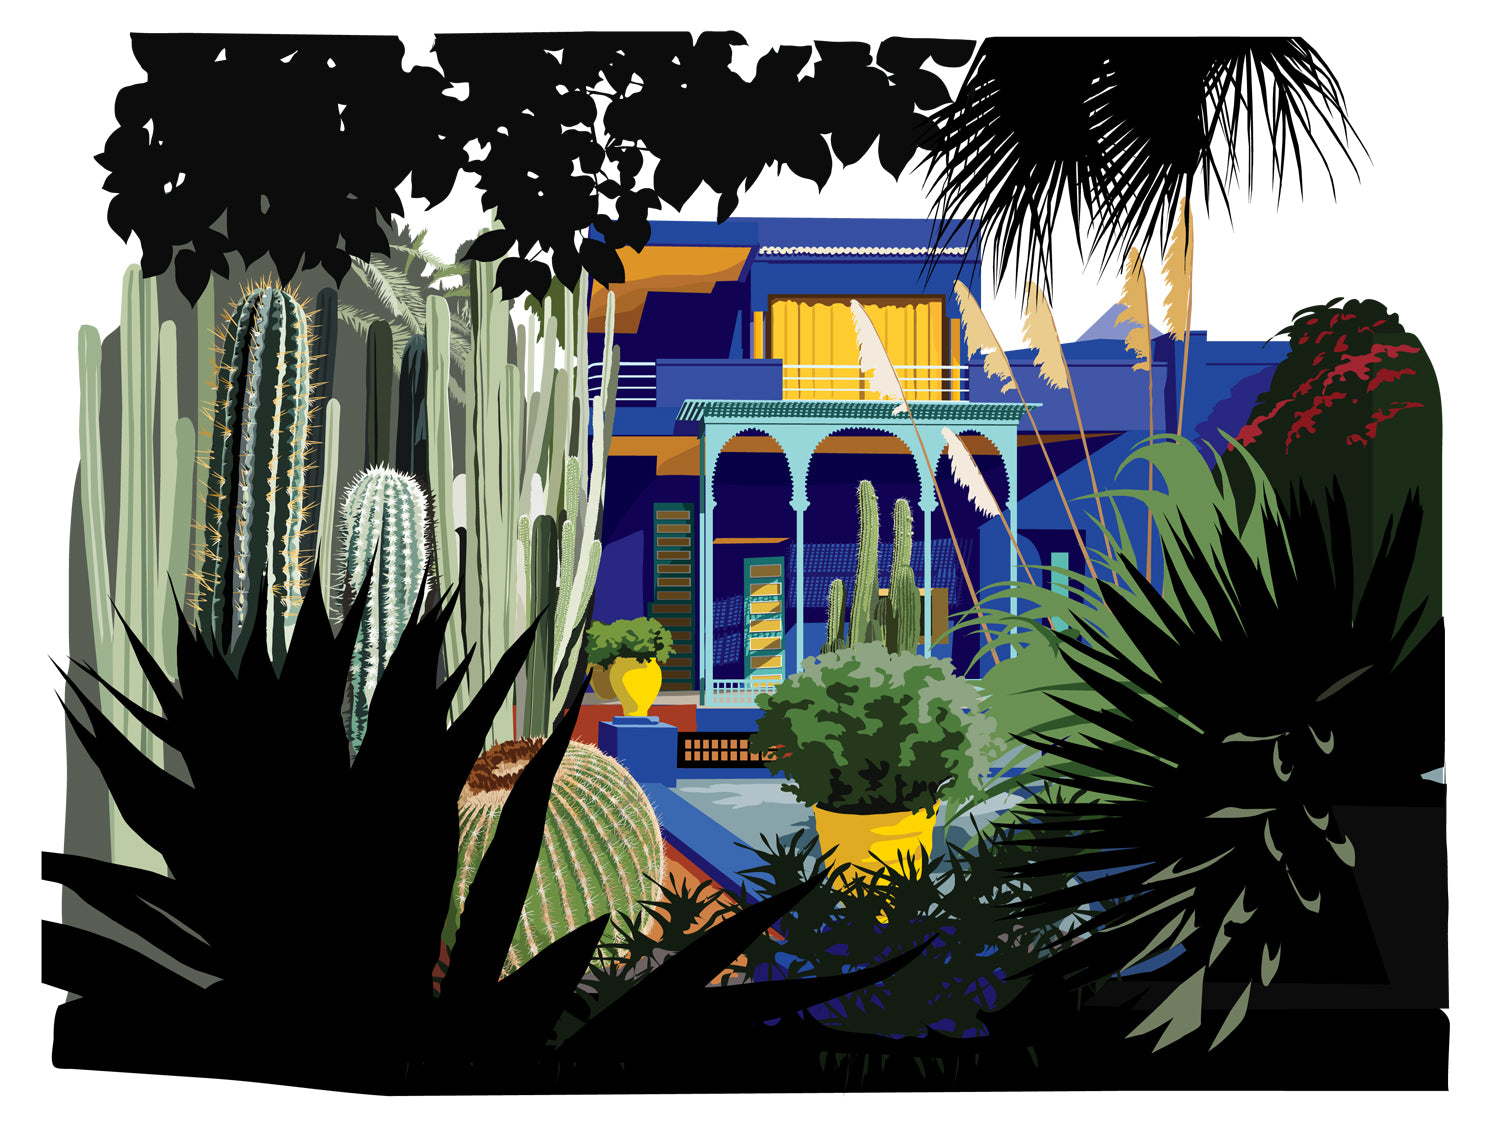 Le Jardin Majorelle, Marrakesh - garden and studio restored by Yves Saint Laurent